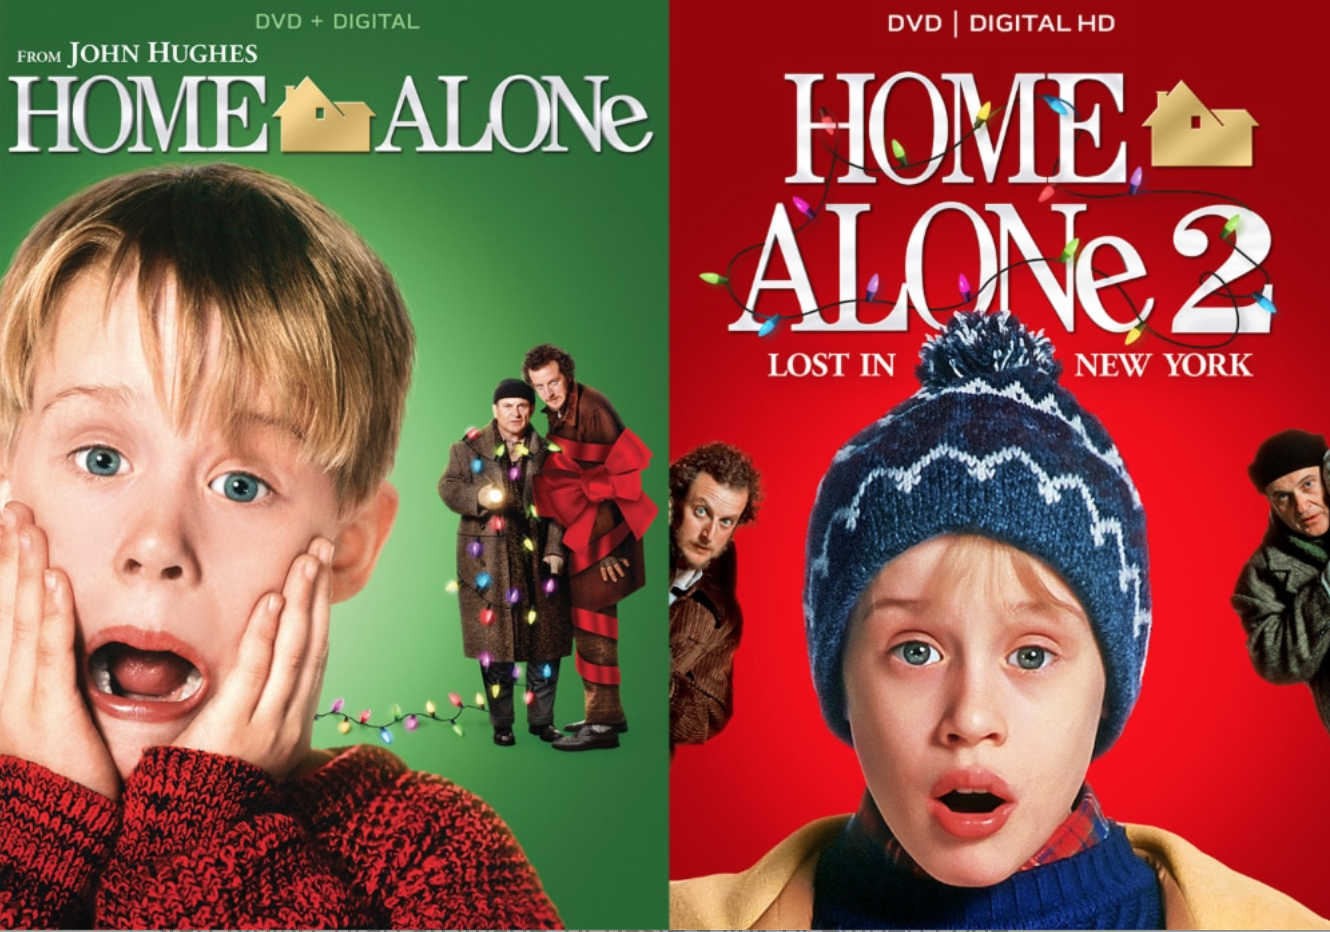 the cover of both movies